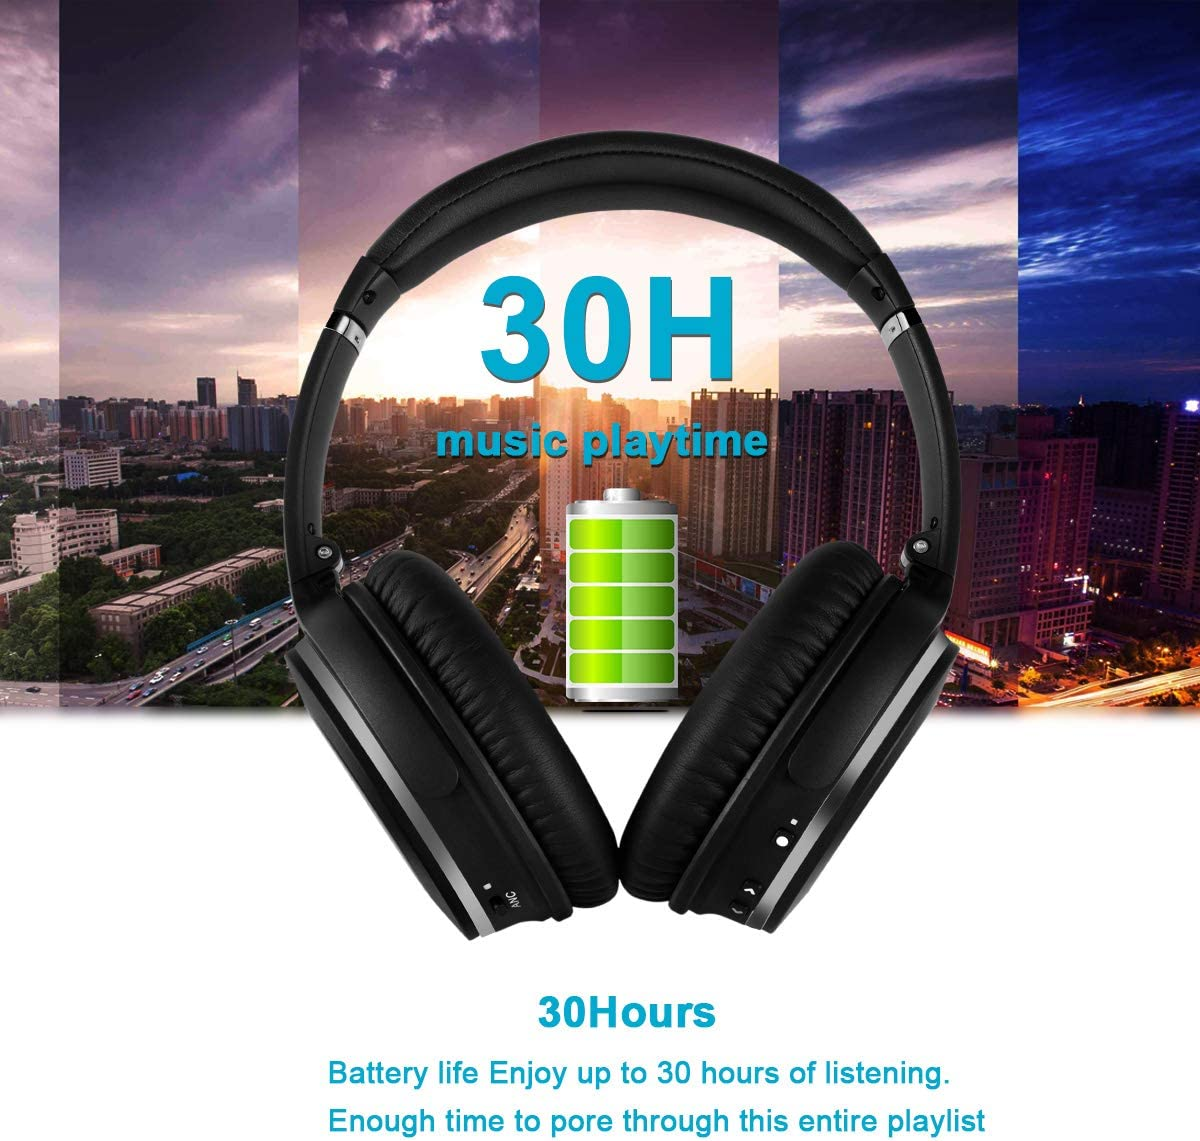 Bluetooth Wireless Headphones Over Ear Noise Cancelling Foldable Headset HI-FI Stereo Superior Deep Bass Headphones Comfortable Protein Earpads 30Hrs Playtime with Mic for PC Cell Phone